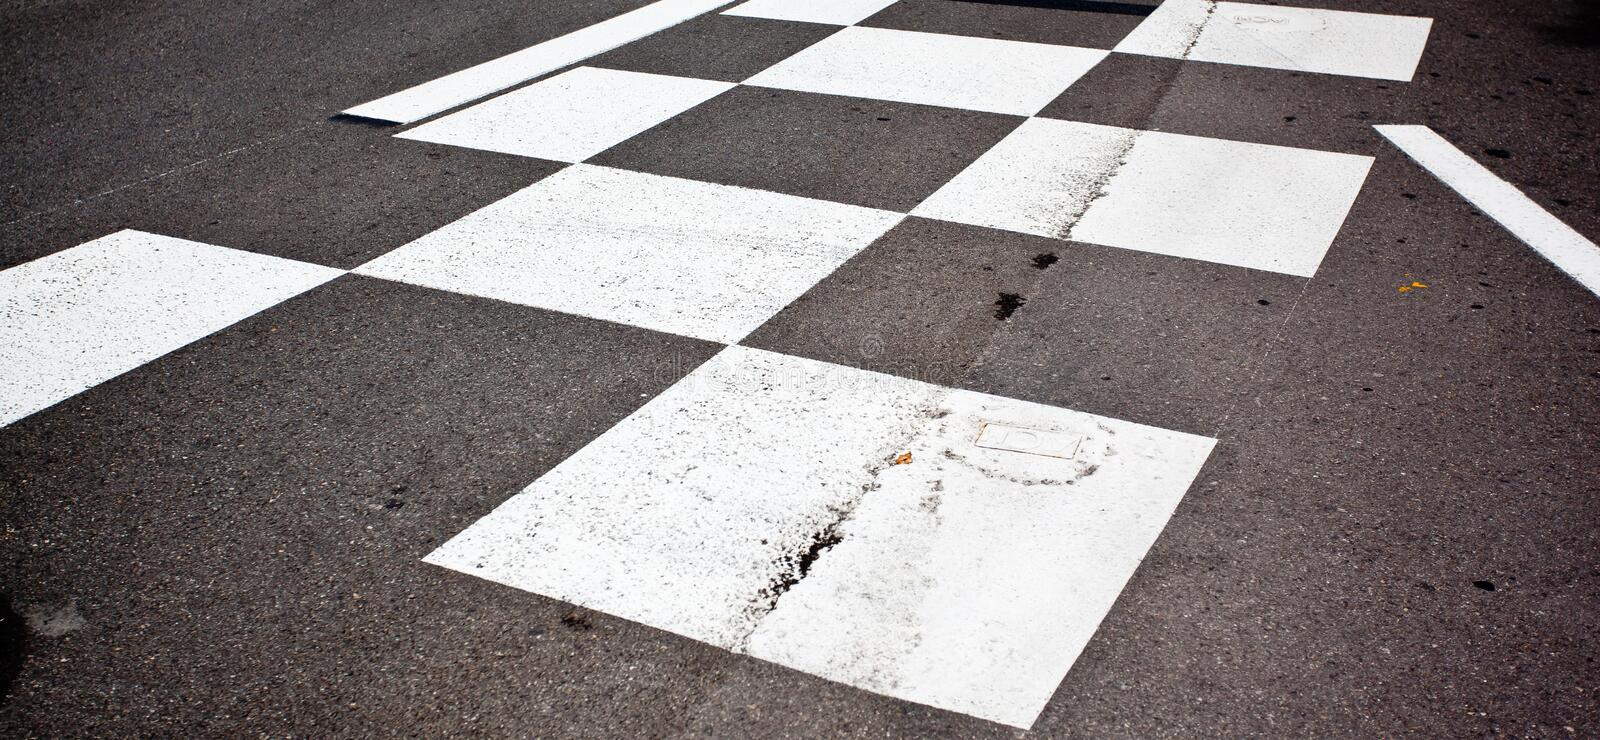 Car race asphalt. And curb on Monaco Montecarlo Grand Prix street circuit stock image